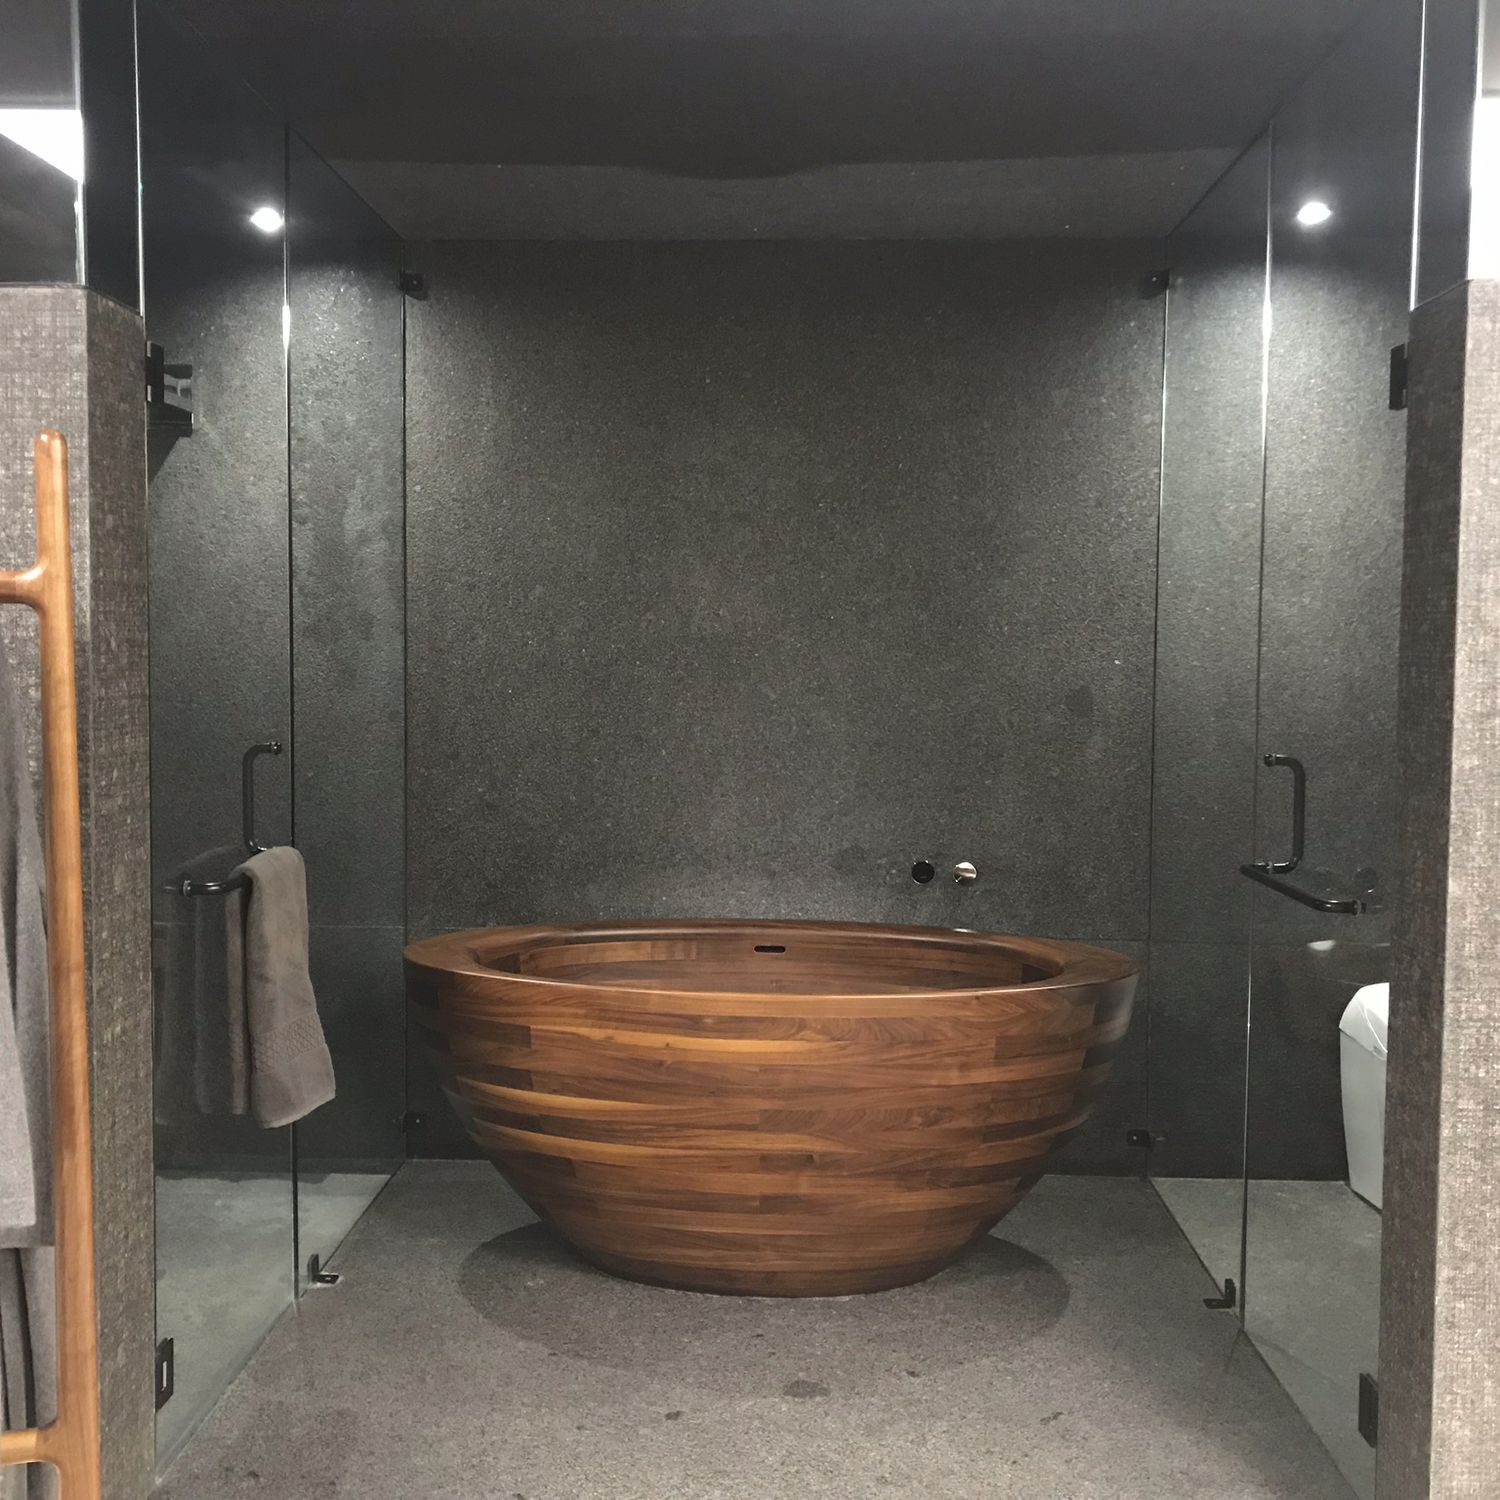 Free Standing Bathtub Baula Unique Wood Design Oval Wooden